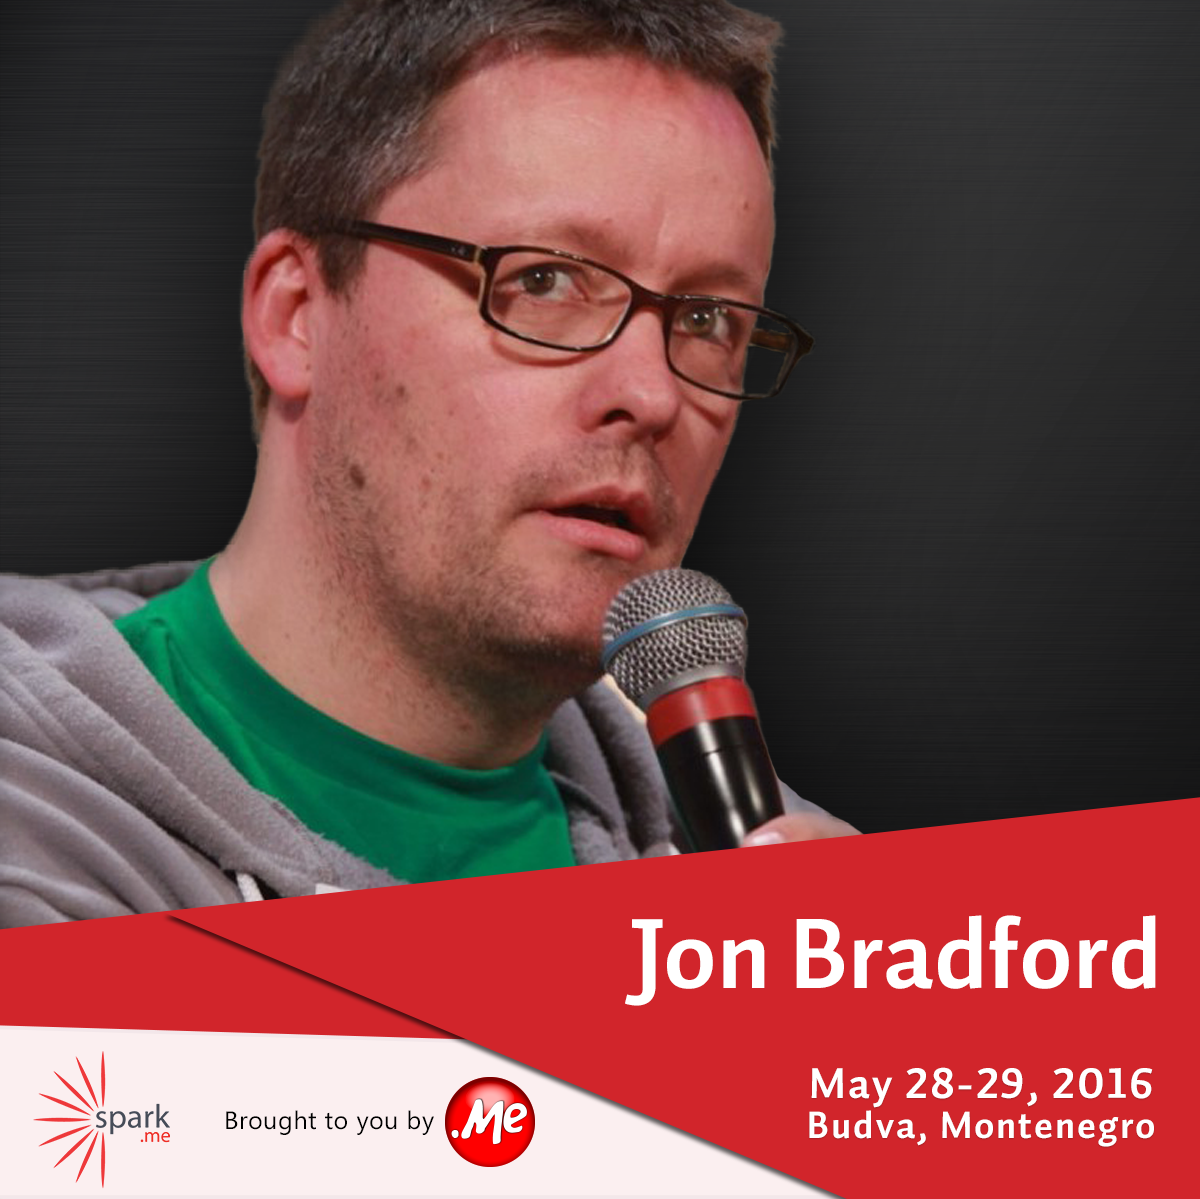 And we have the first confirmed speaker for #SparkMe 2016! The one and only @jd. #startups https://t.co/YuYMDNnJZR https://t.co/3Q1a36UglQ